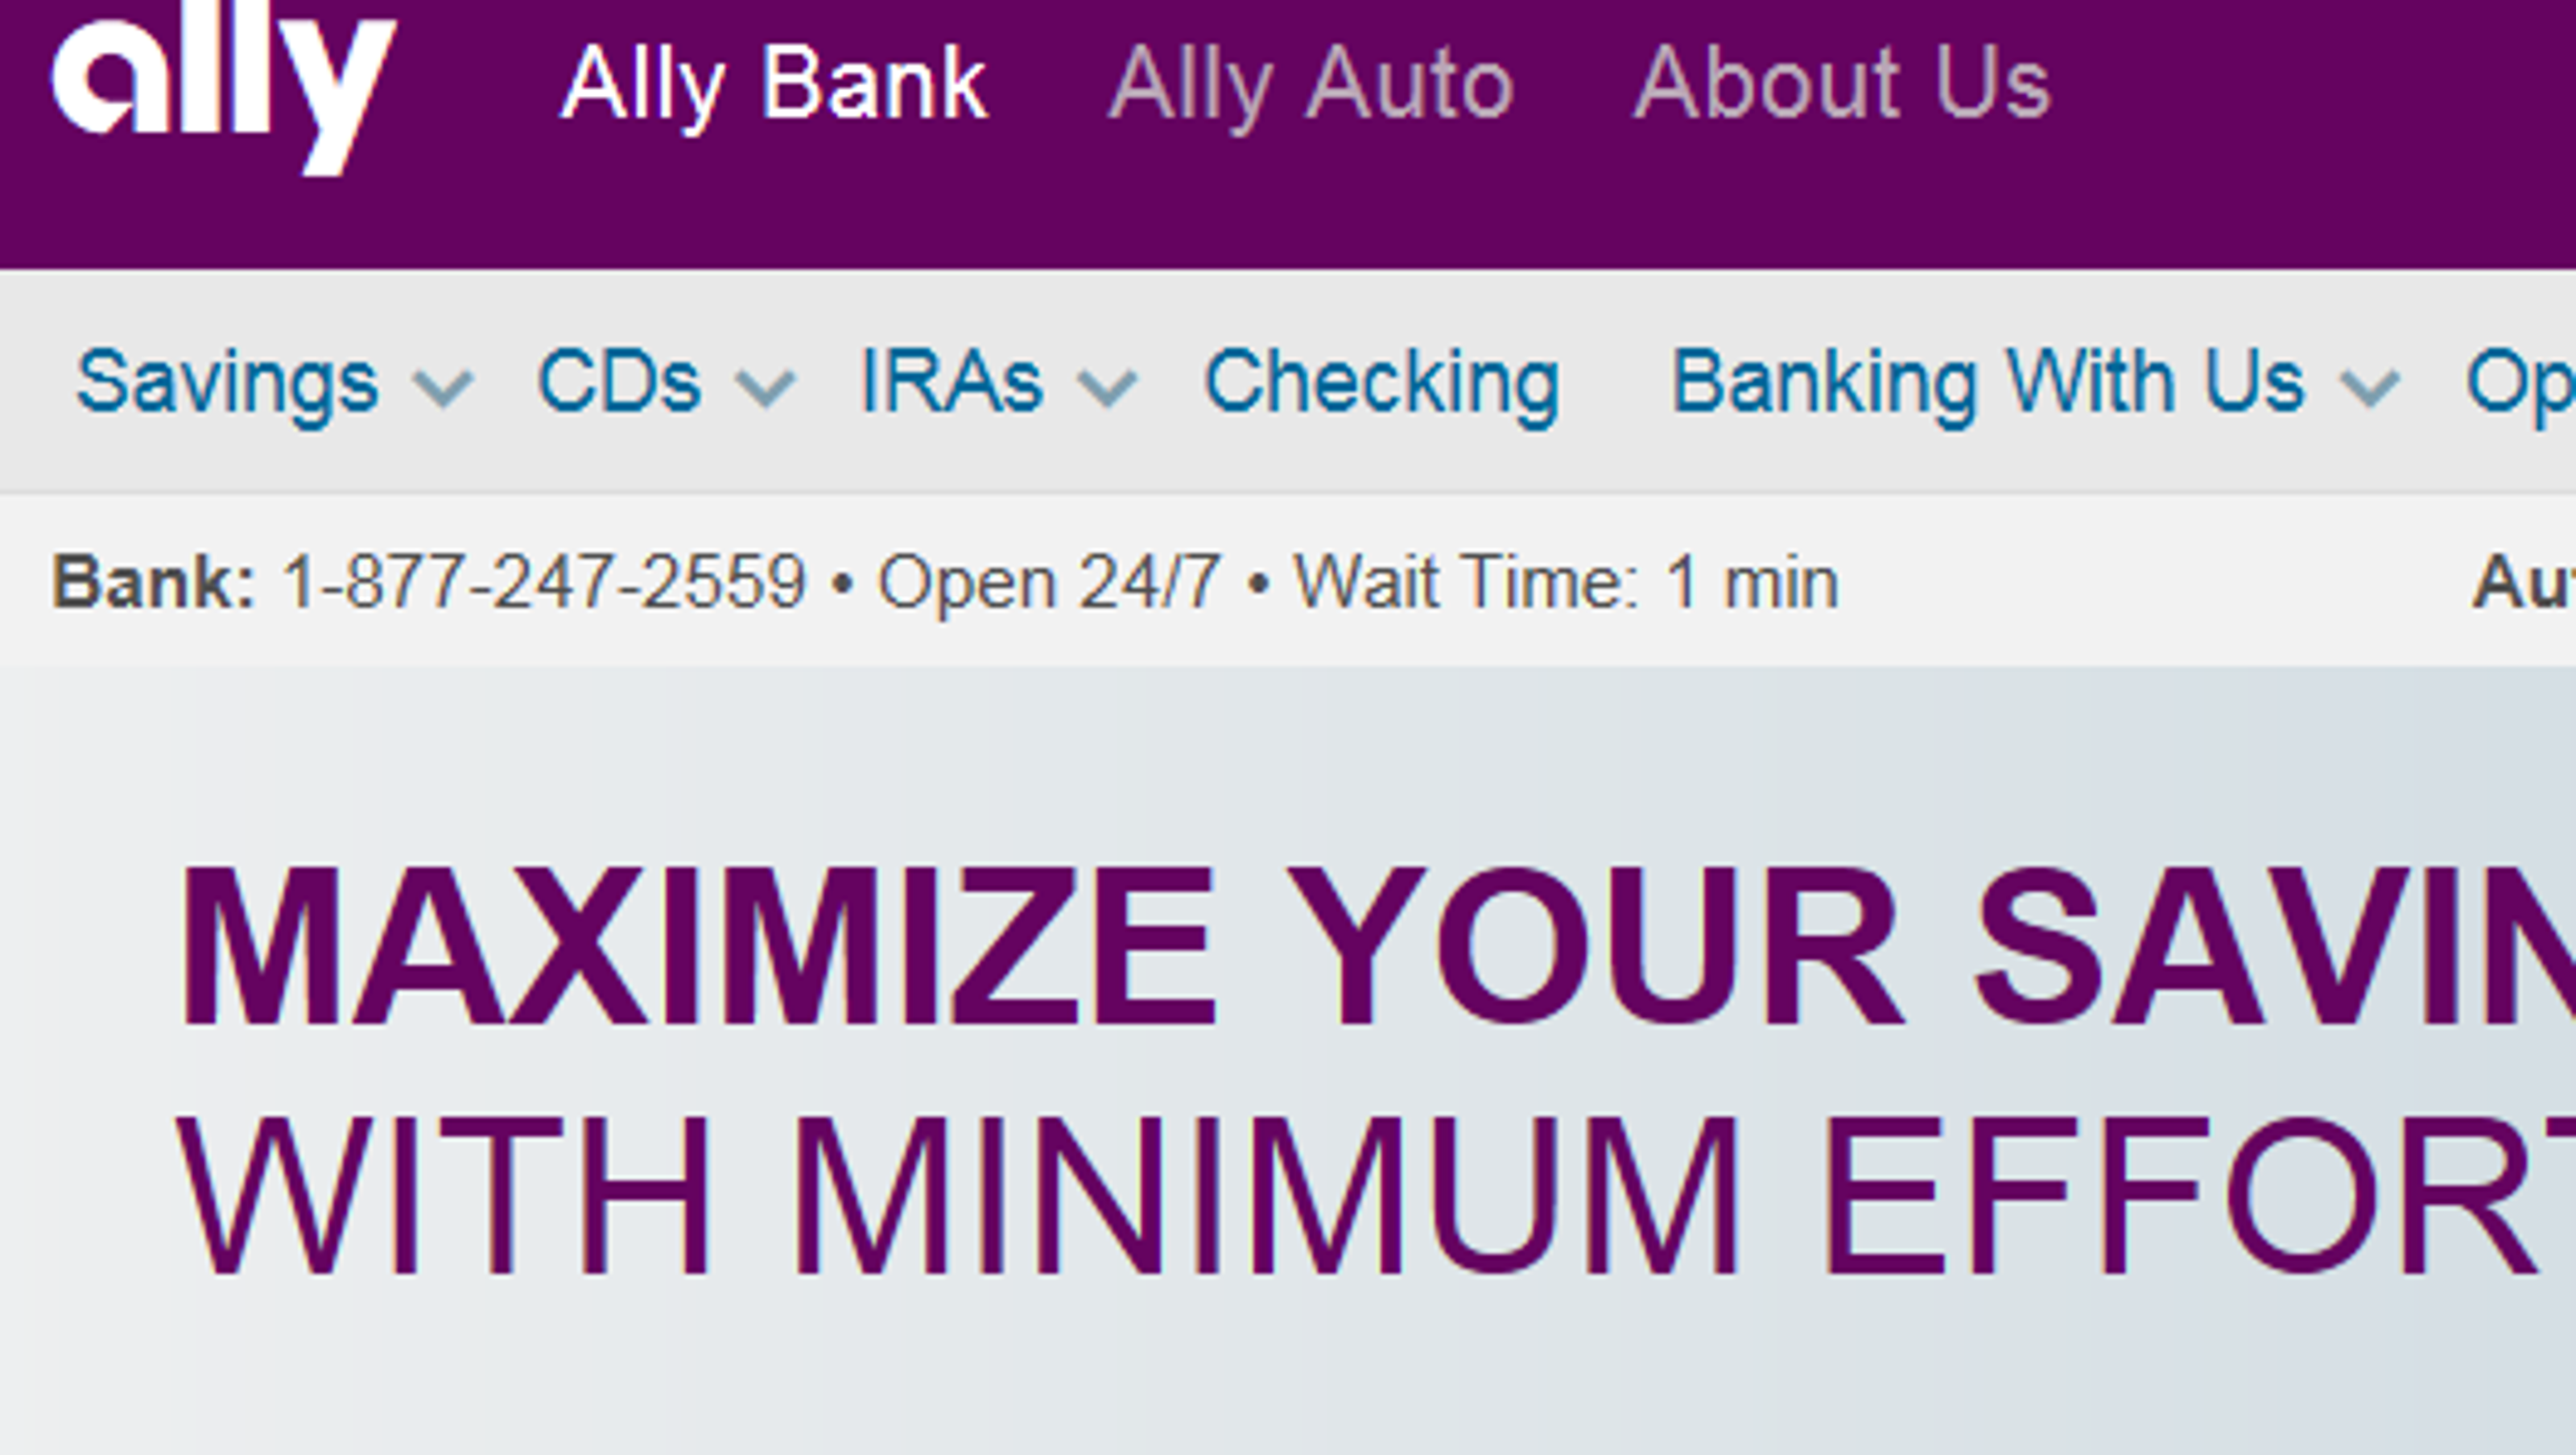 Ally Financial jumps into brokerage business